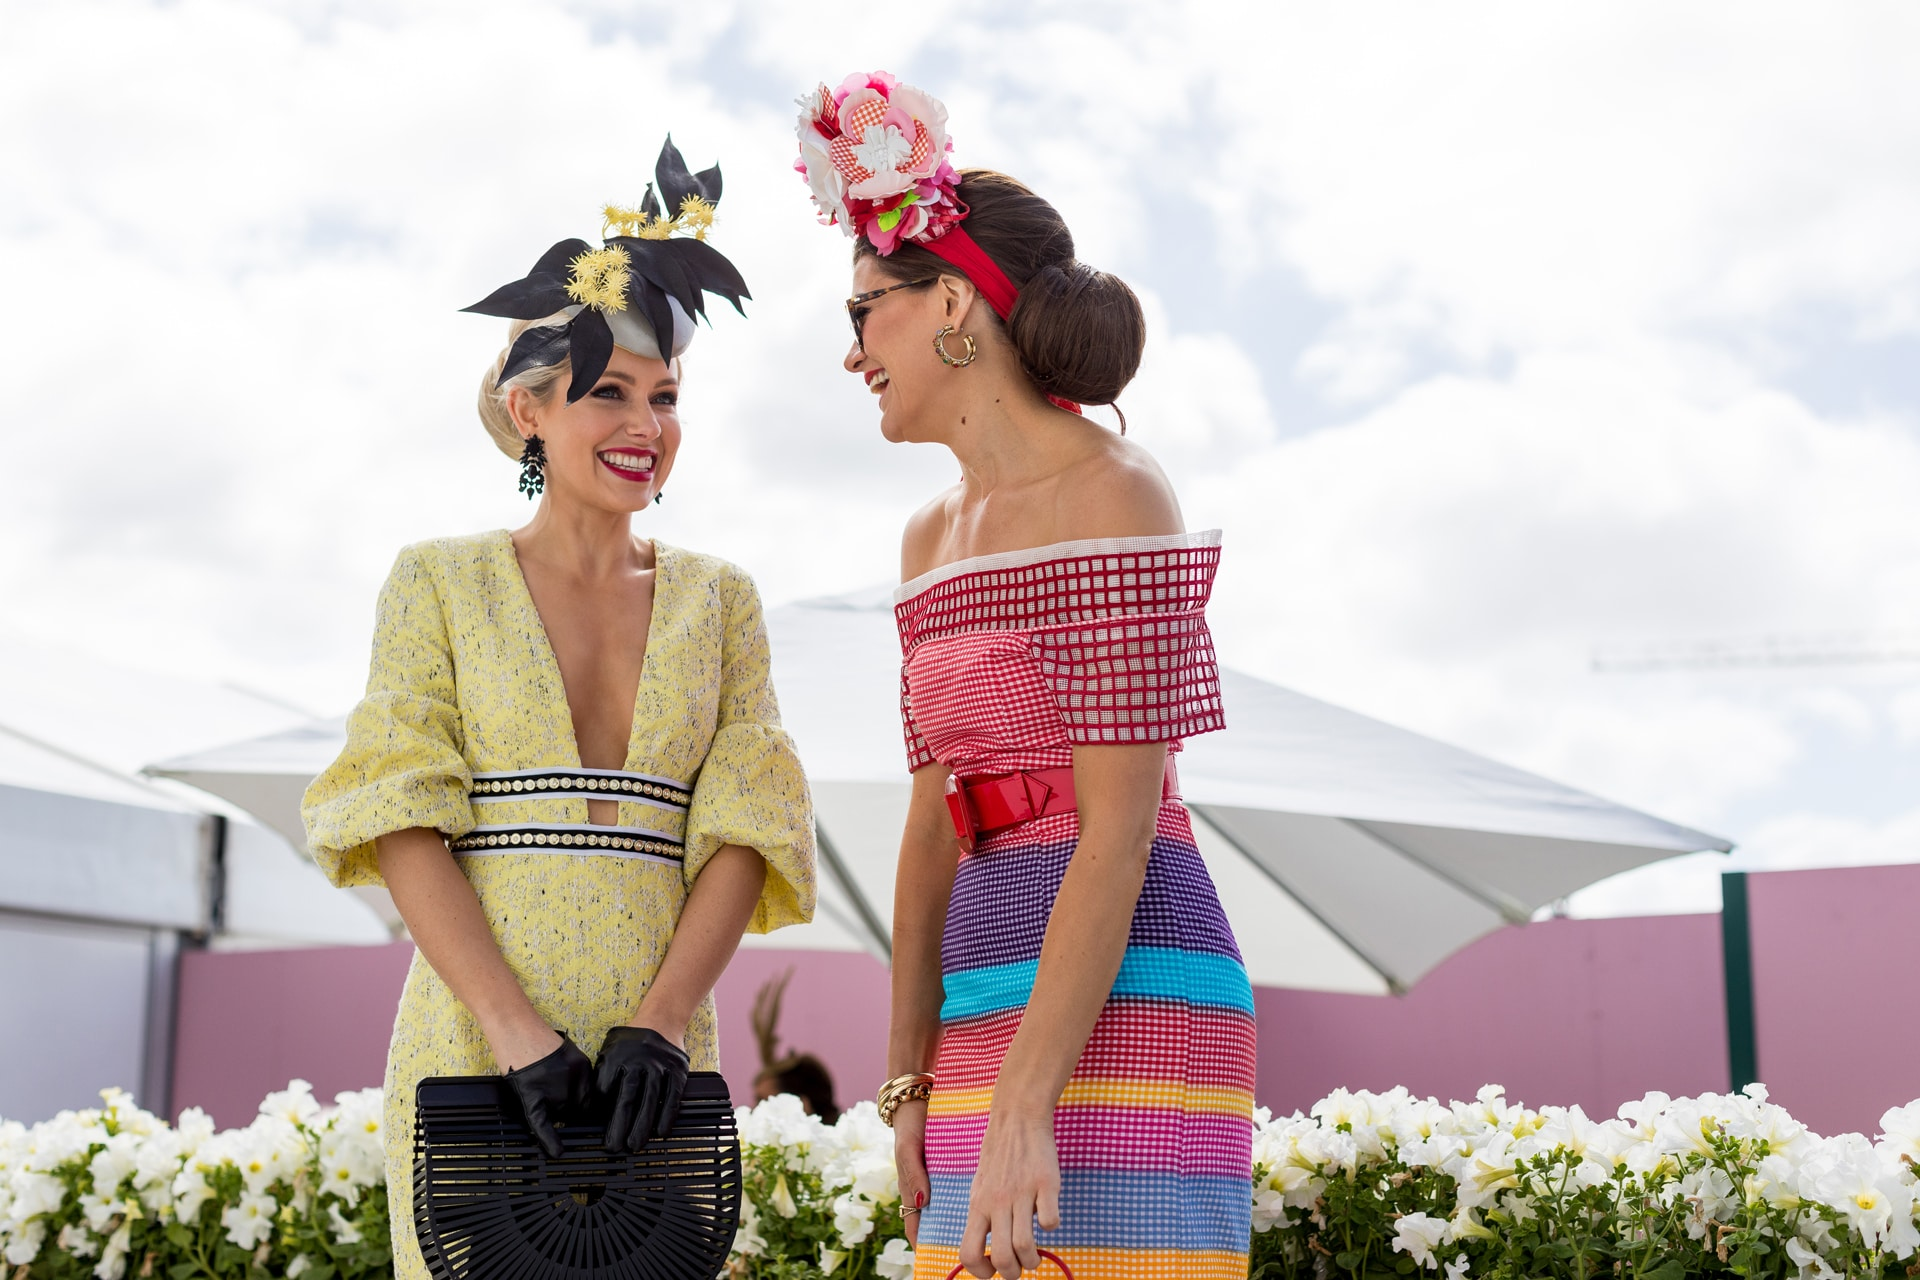 96d7dd842a The best street style from Derby Day 2018 - Vogue Australia